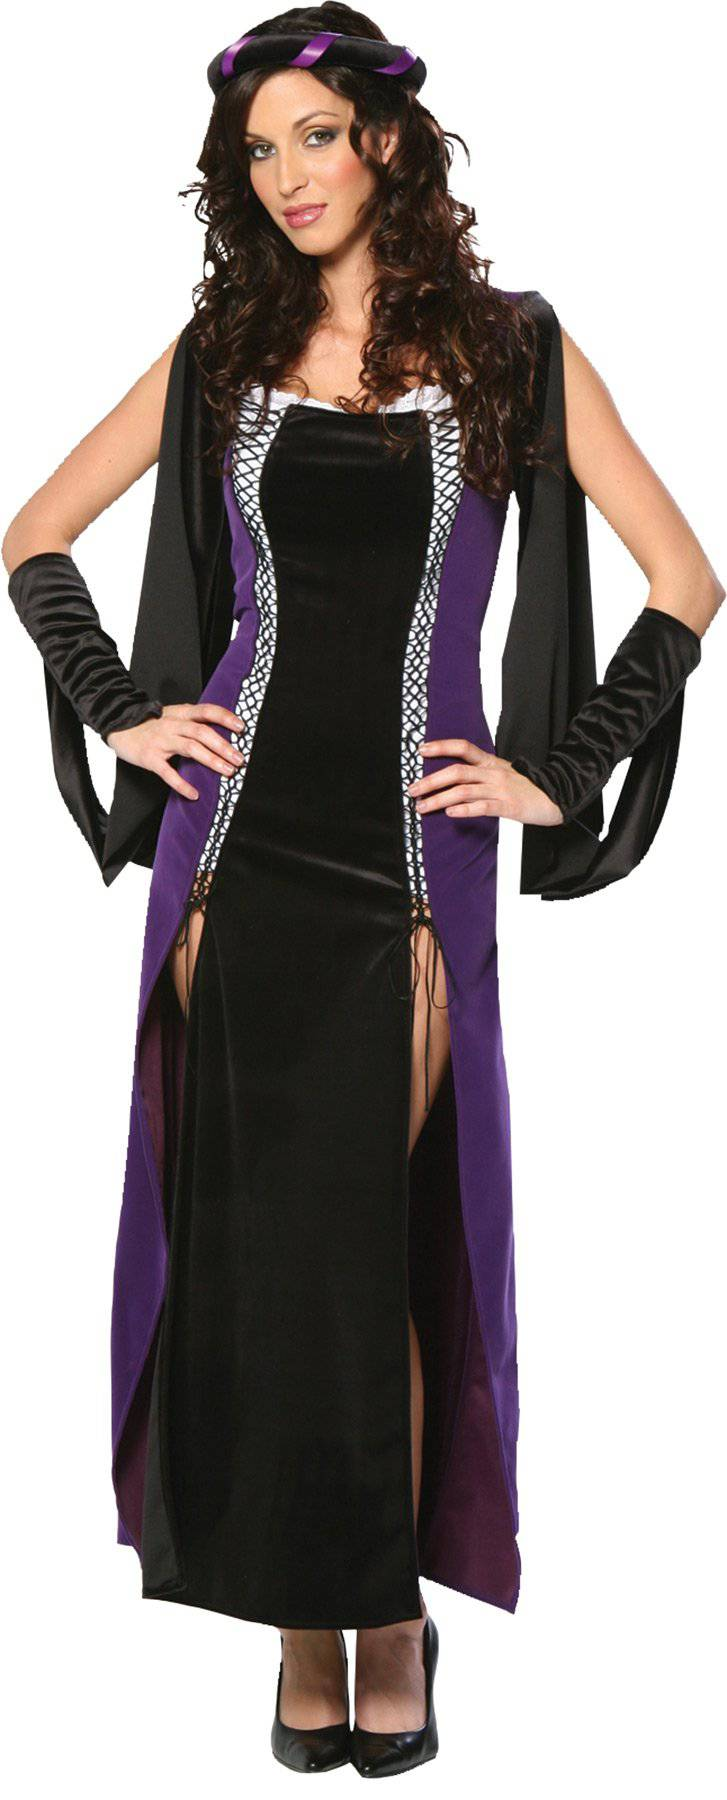 Cinema Secrets Women's Sexy Lady of Shallot Adult Costume - Costume Arena